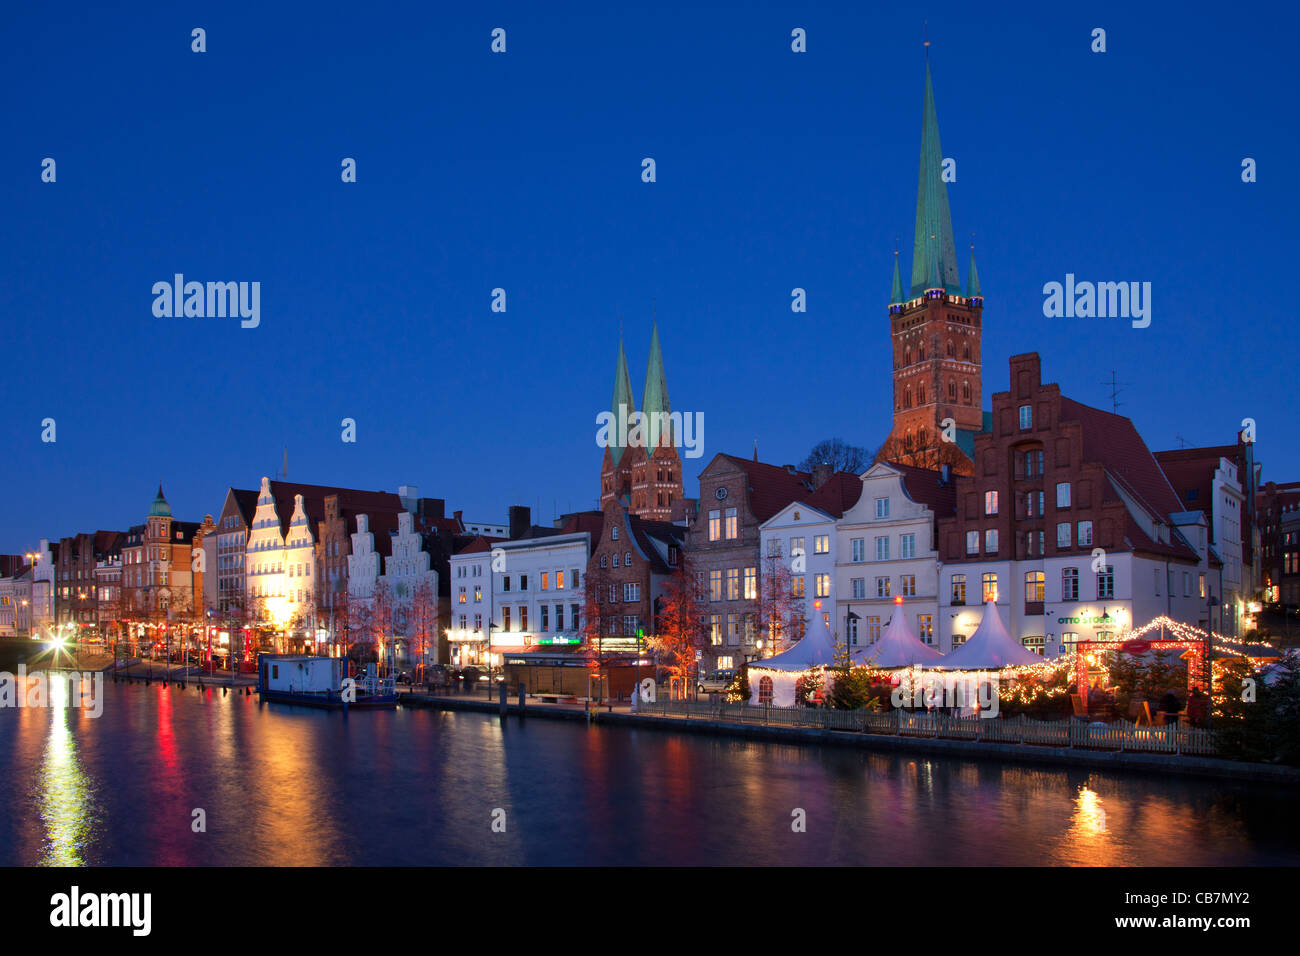 Illuminated booths and stands at Christmas market in the Hanseatic City of Lübeck, Germany - Stock Image